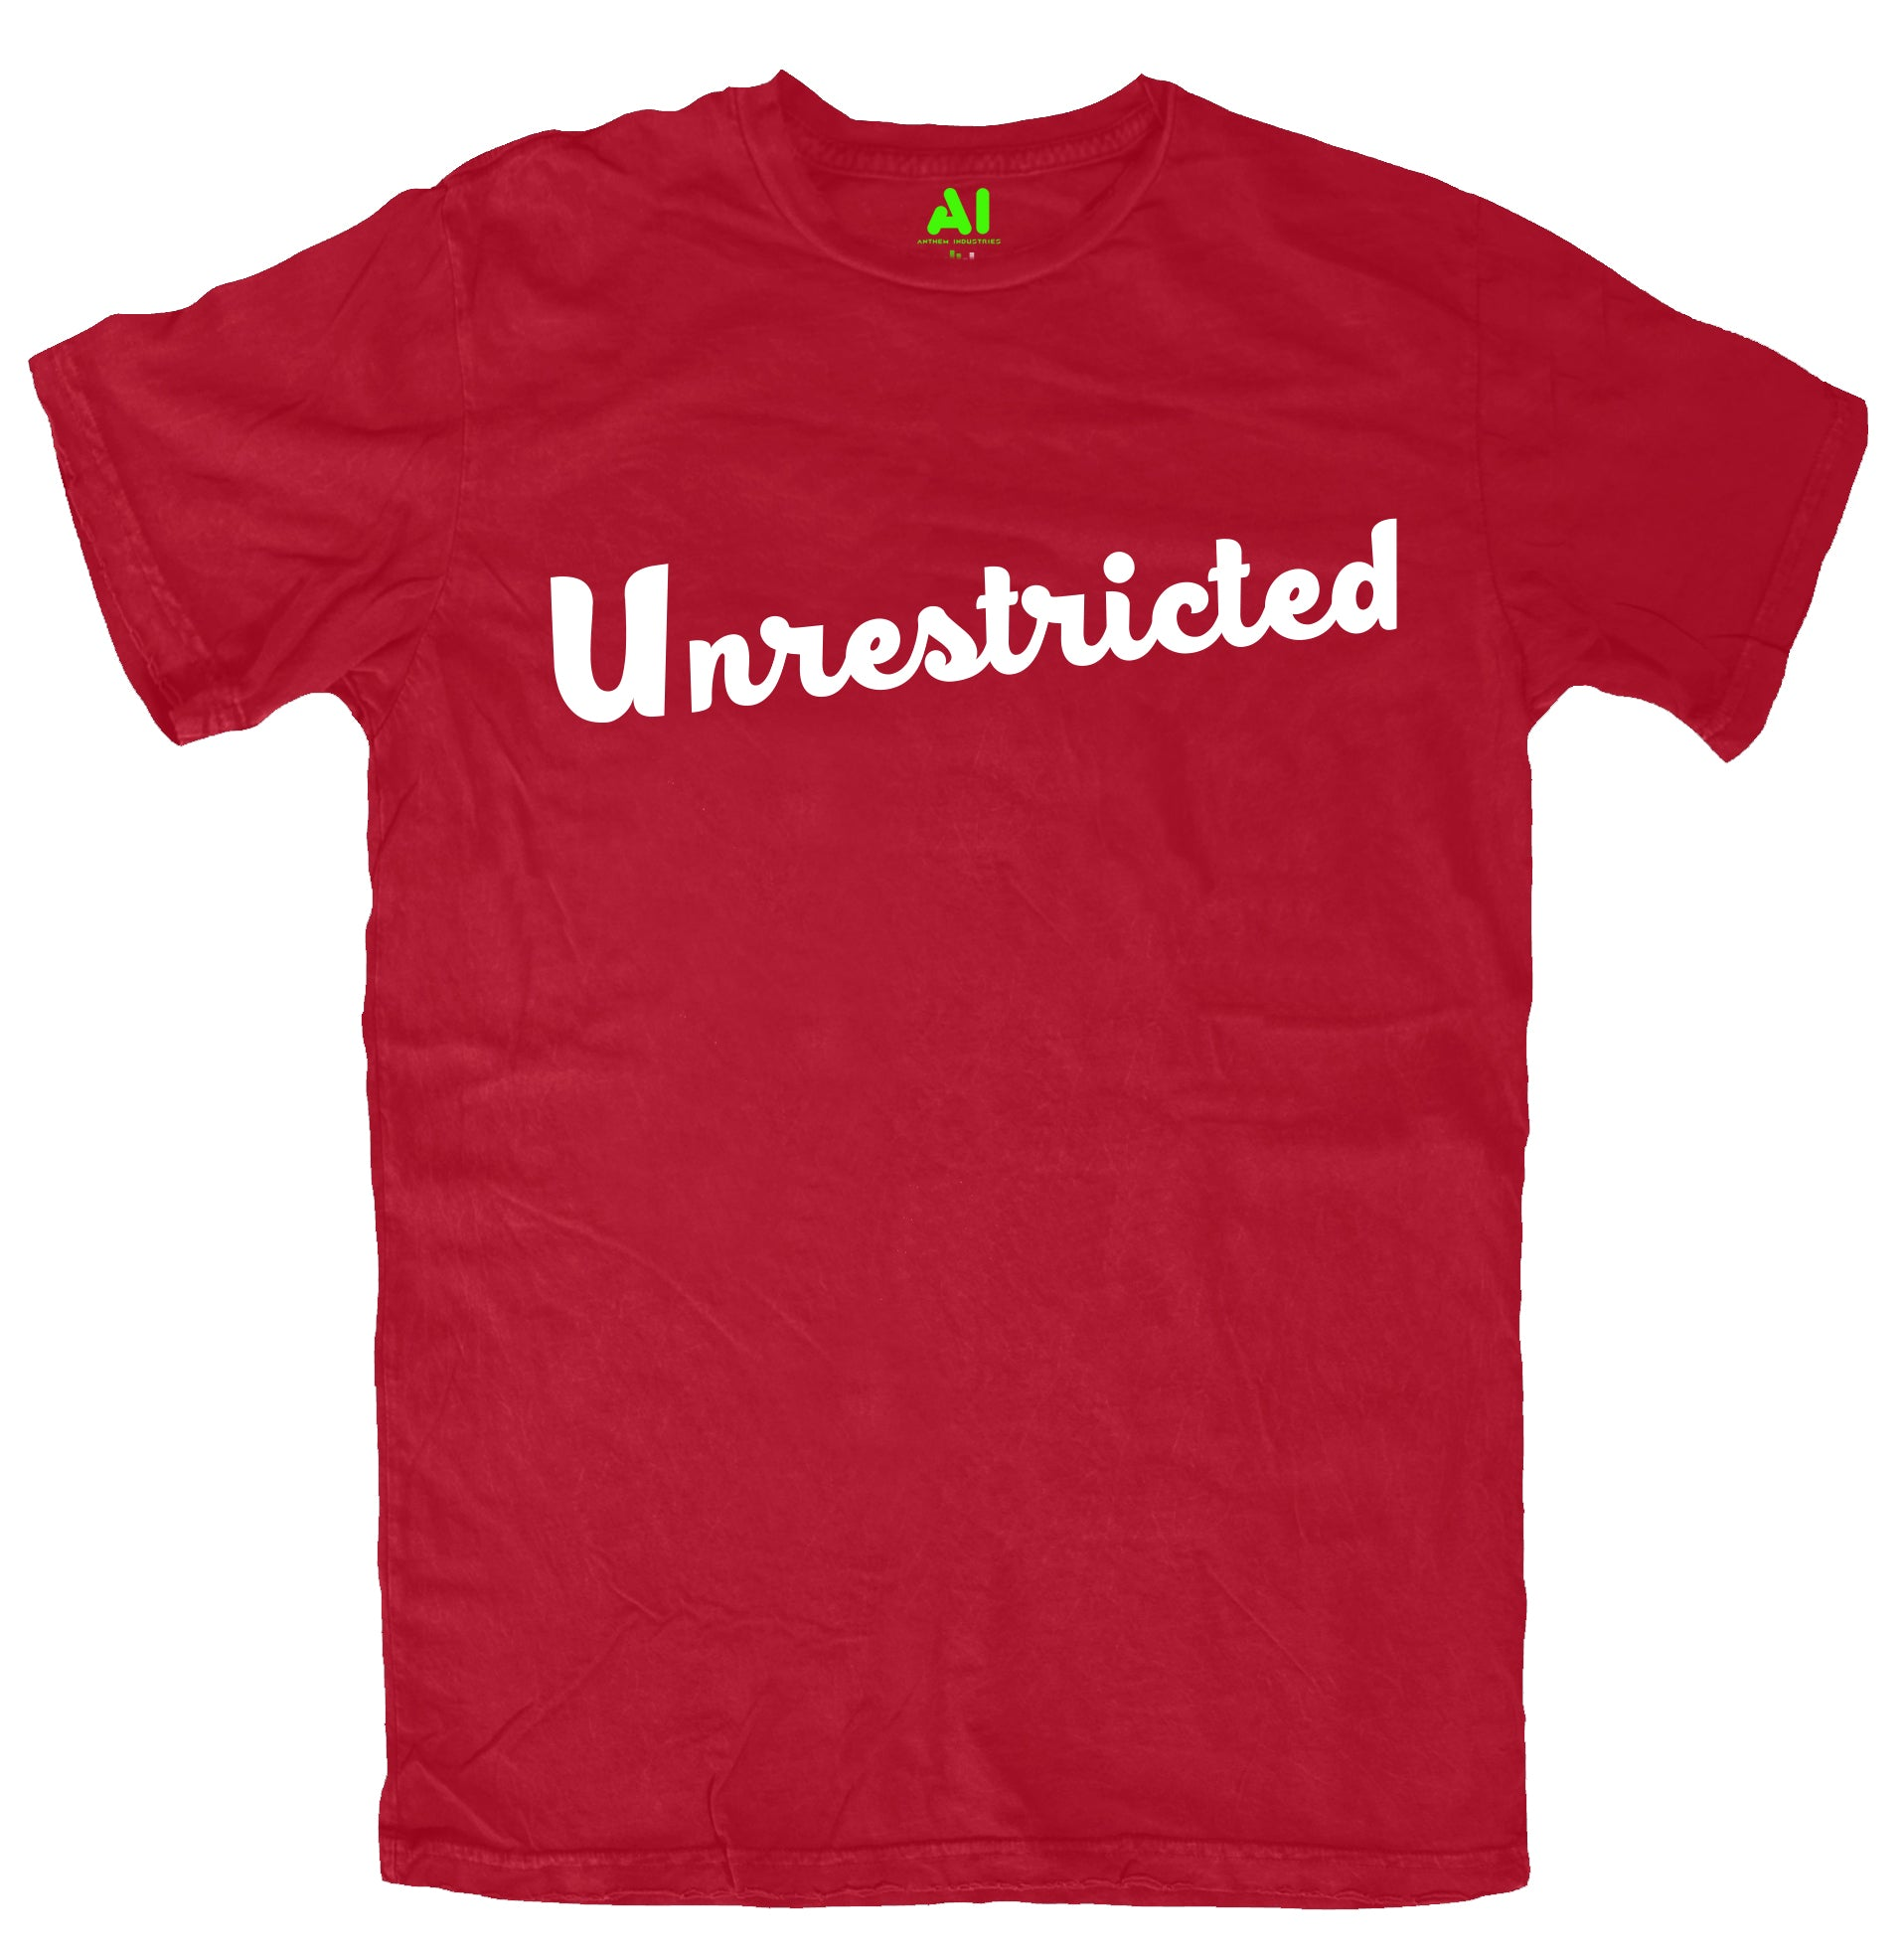 Unrestricted Tee